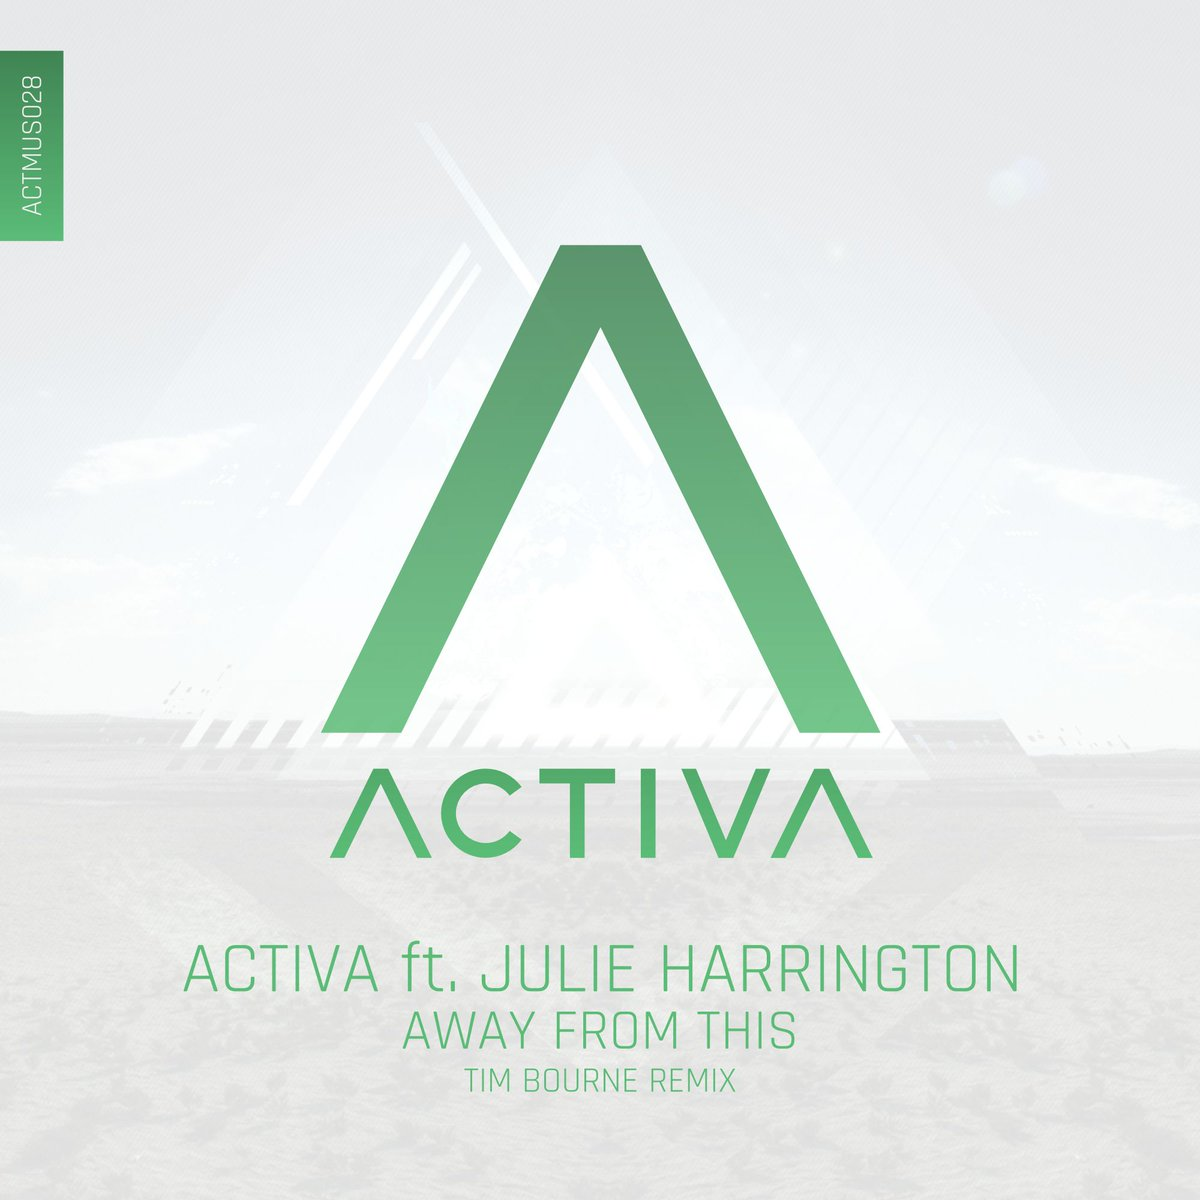 11. Activa ft. Julie Harrington - Away From This (Tim Bourne Remix) [Activa Music] #BigTune #PureTrance #PTR239 https://t.co/qj0CfeDovO